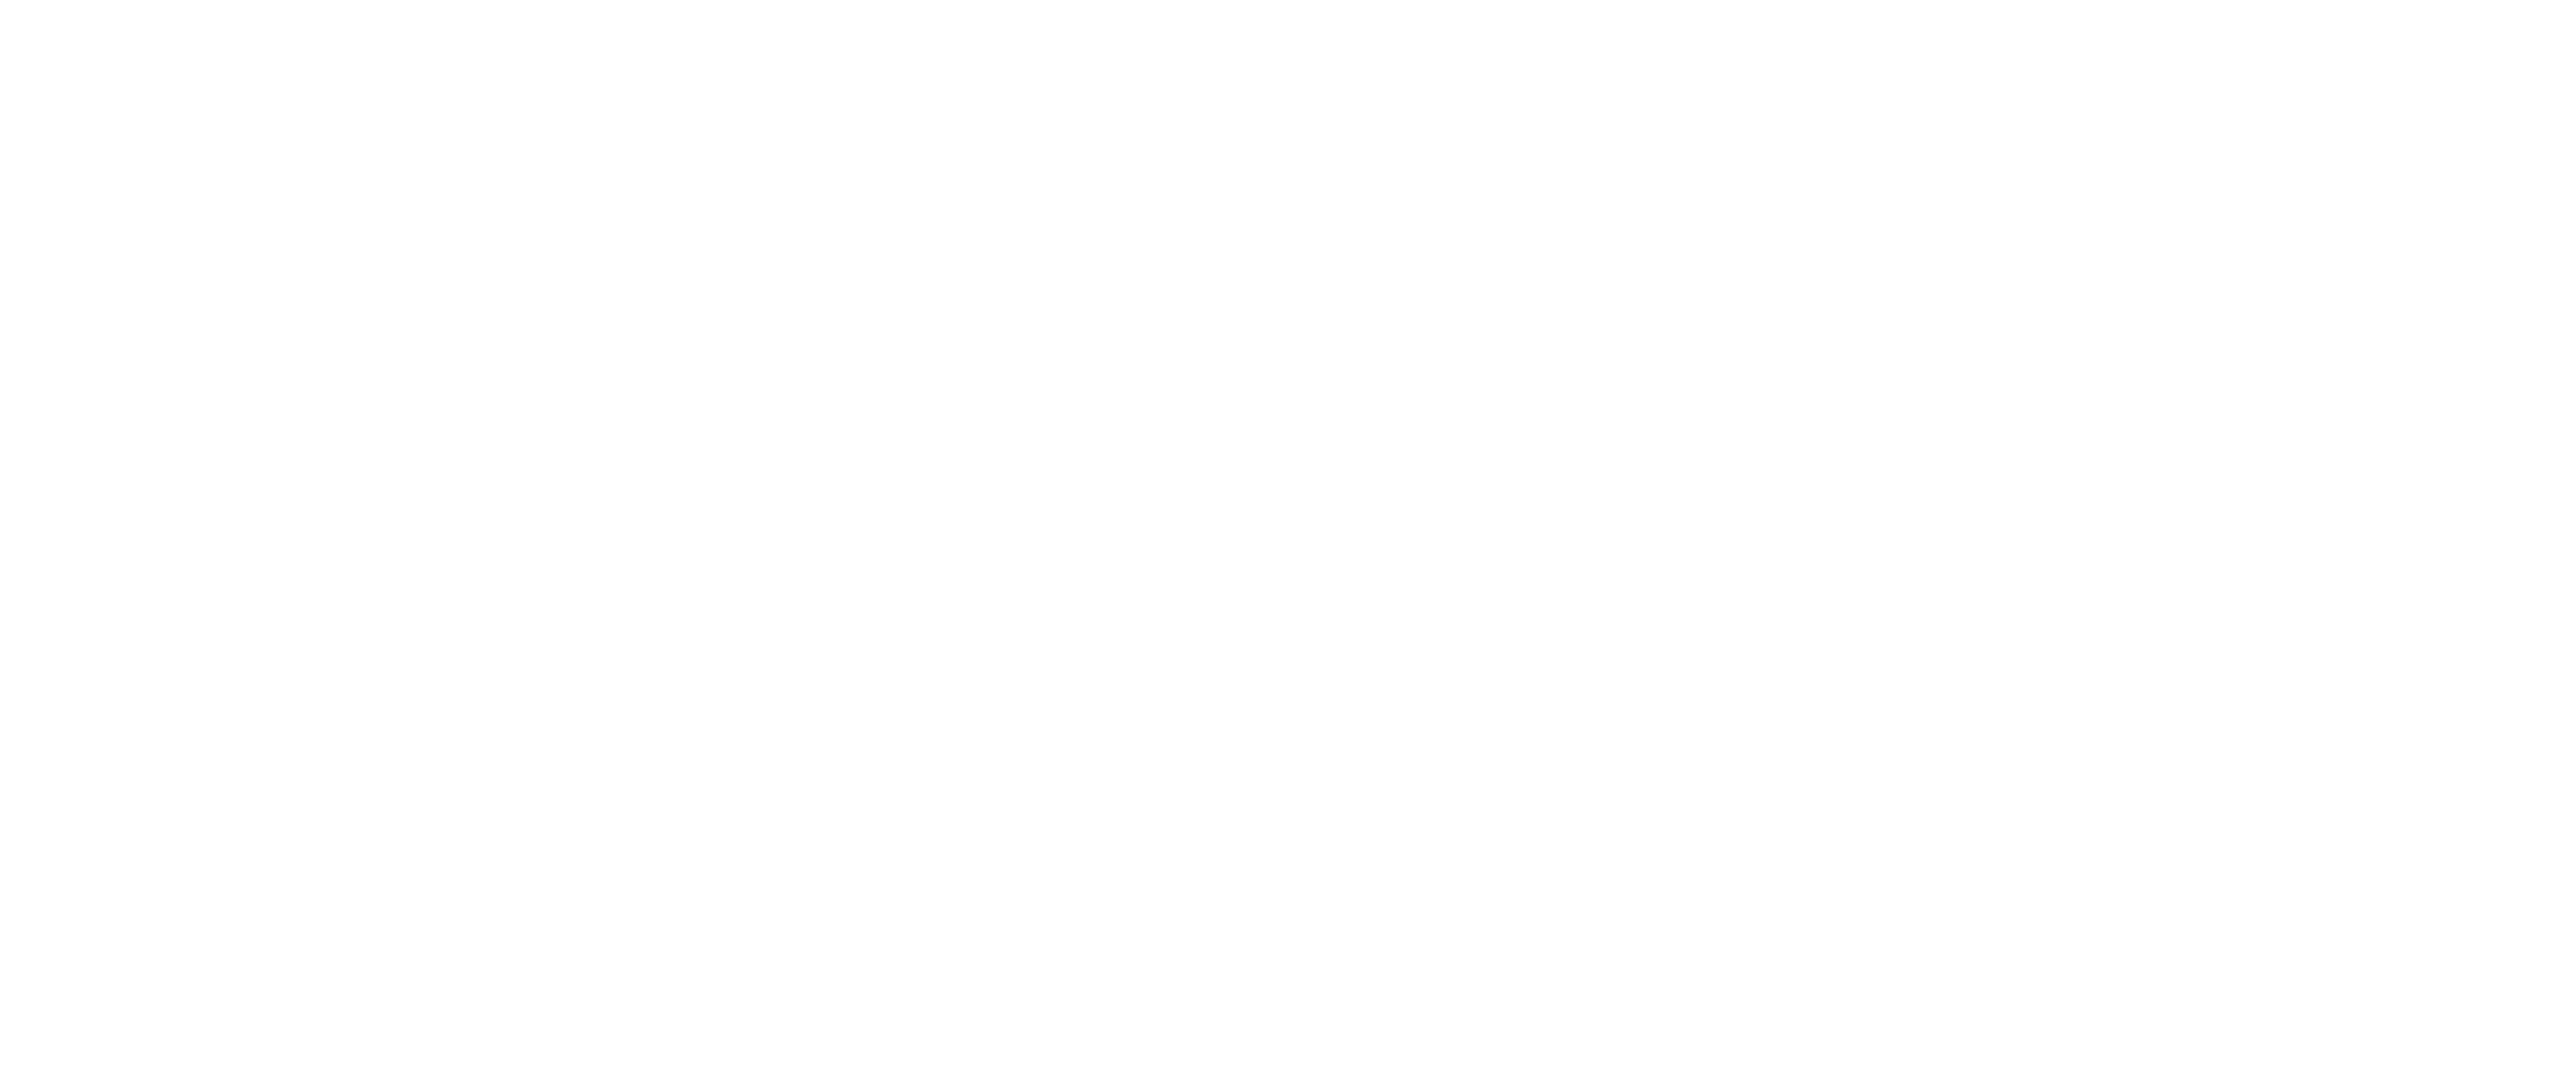 Anno-1800-full-game-cracked